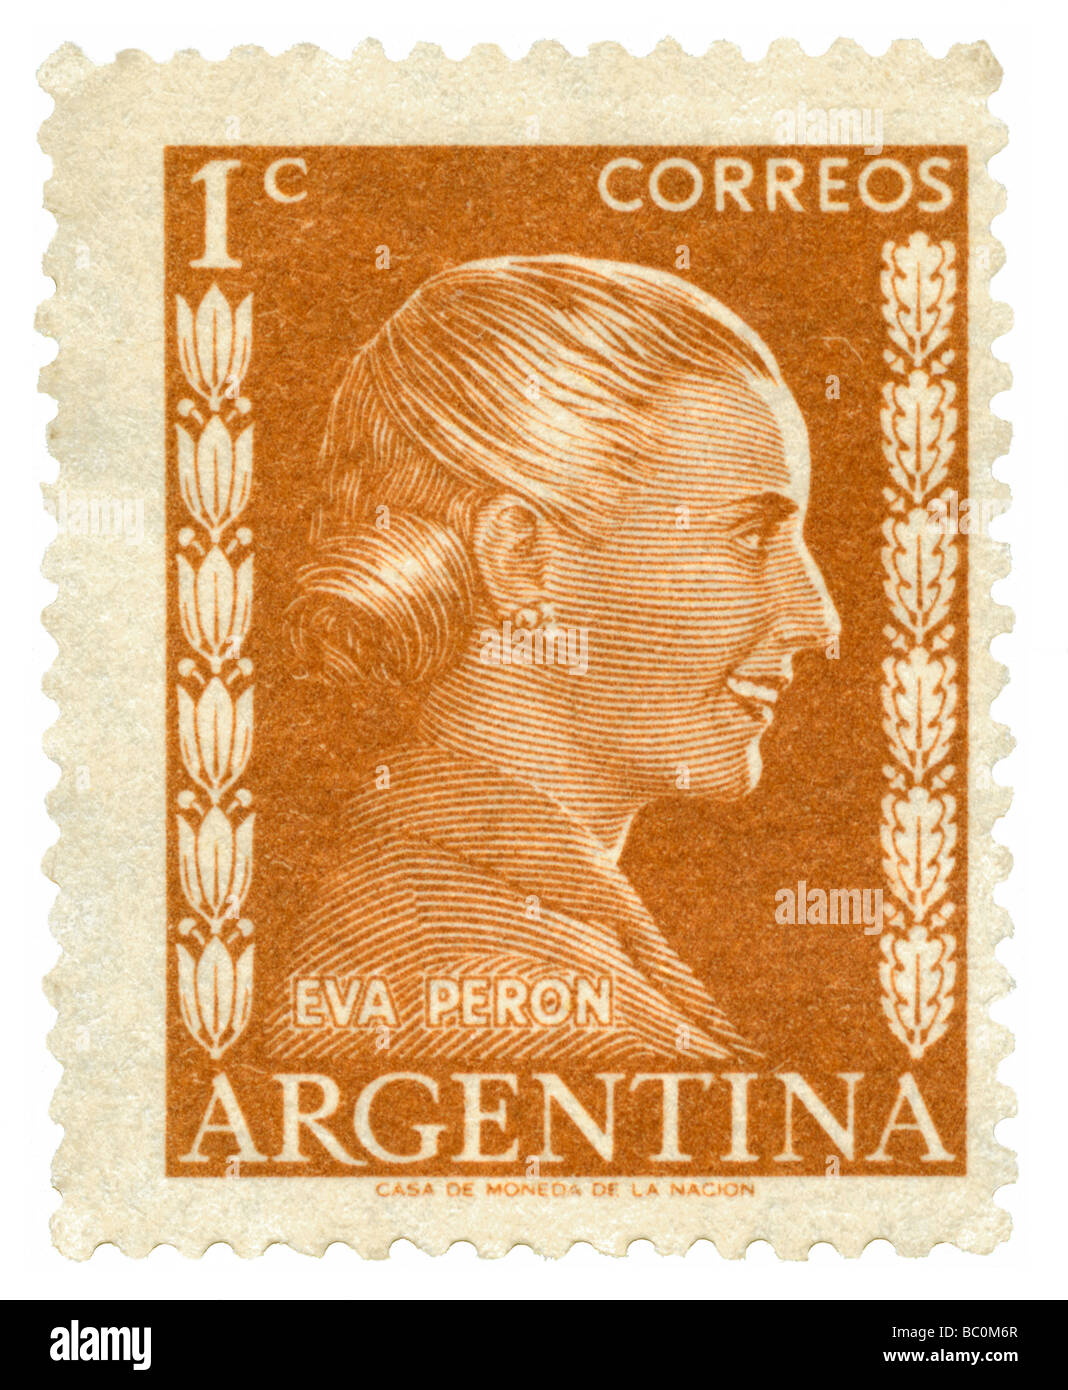 Old Argentina postage stamp with portrait of Eva Peron - Stock Image